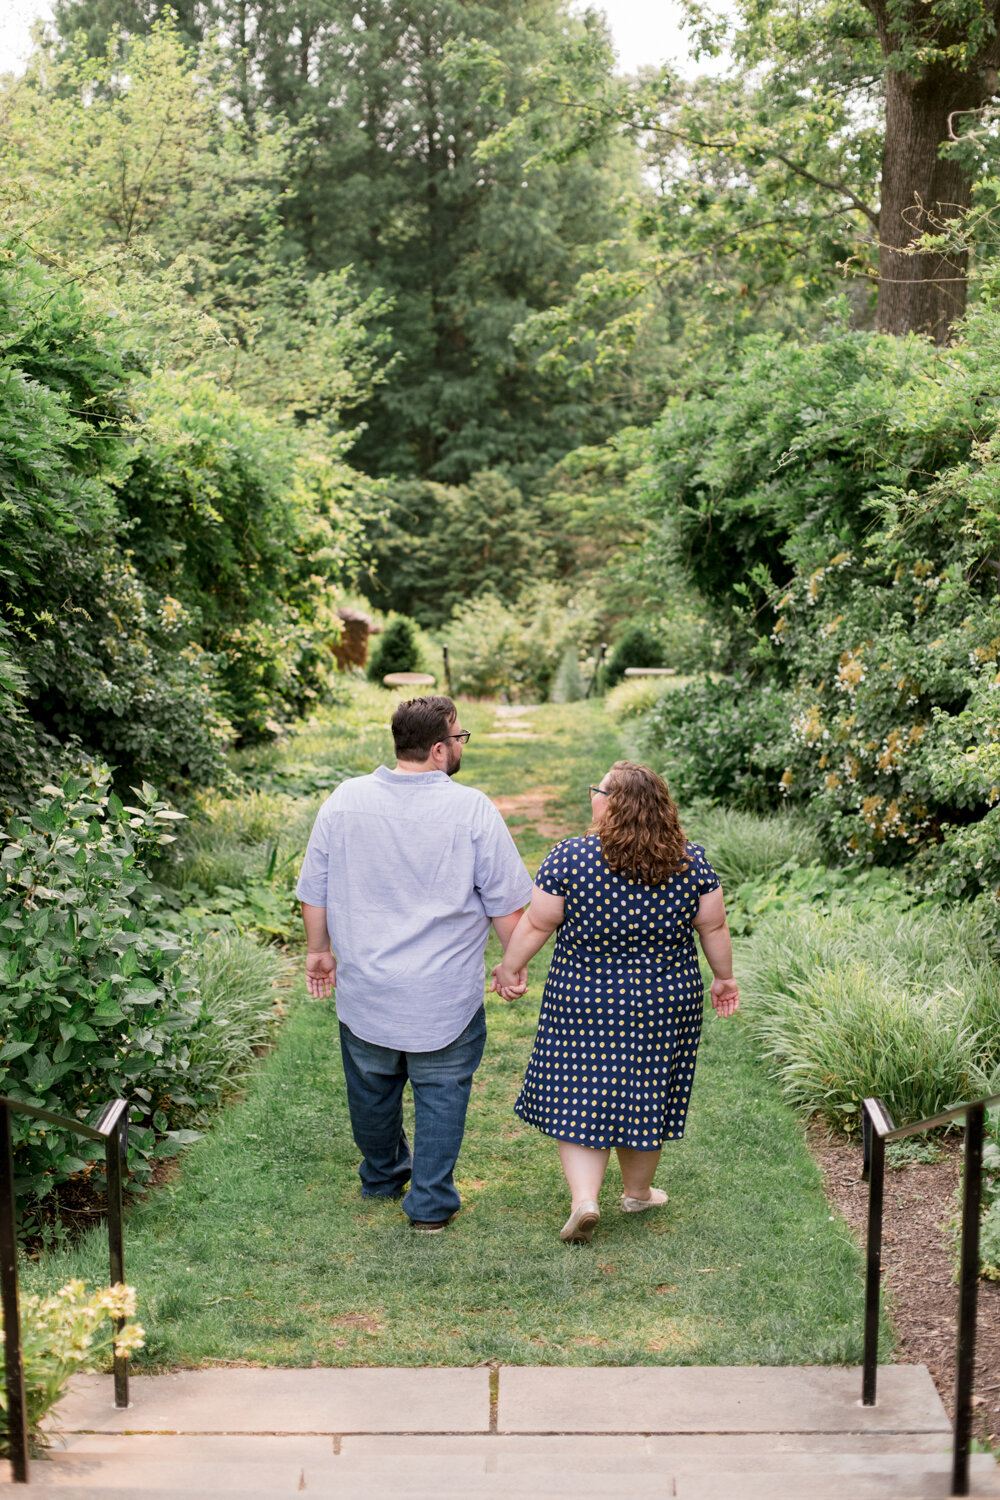 morris-arboretum-chestnut-hill-garden-engagement-session-philadelphia-wedding-photography-15.jpg